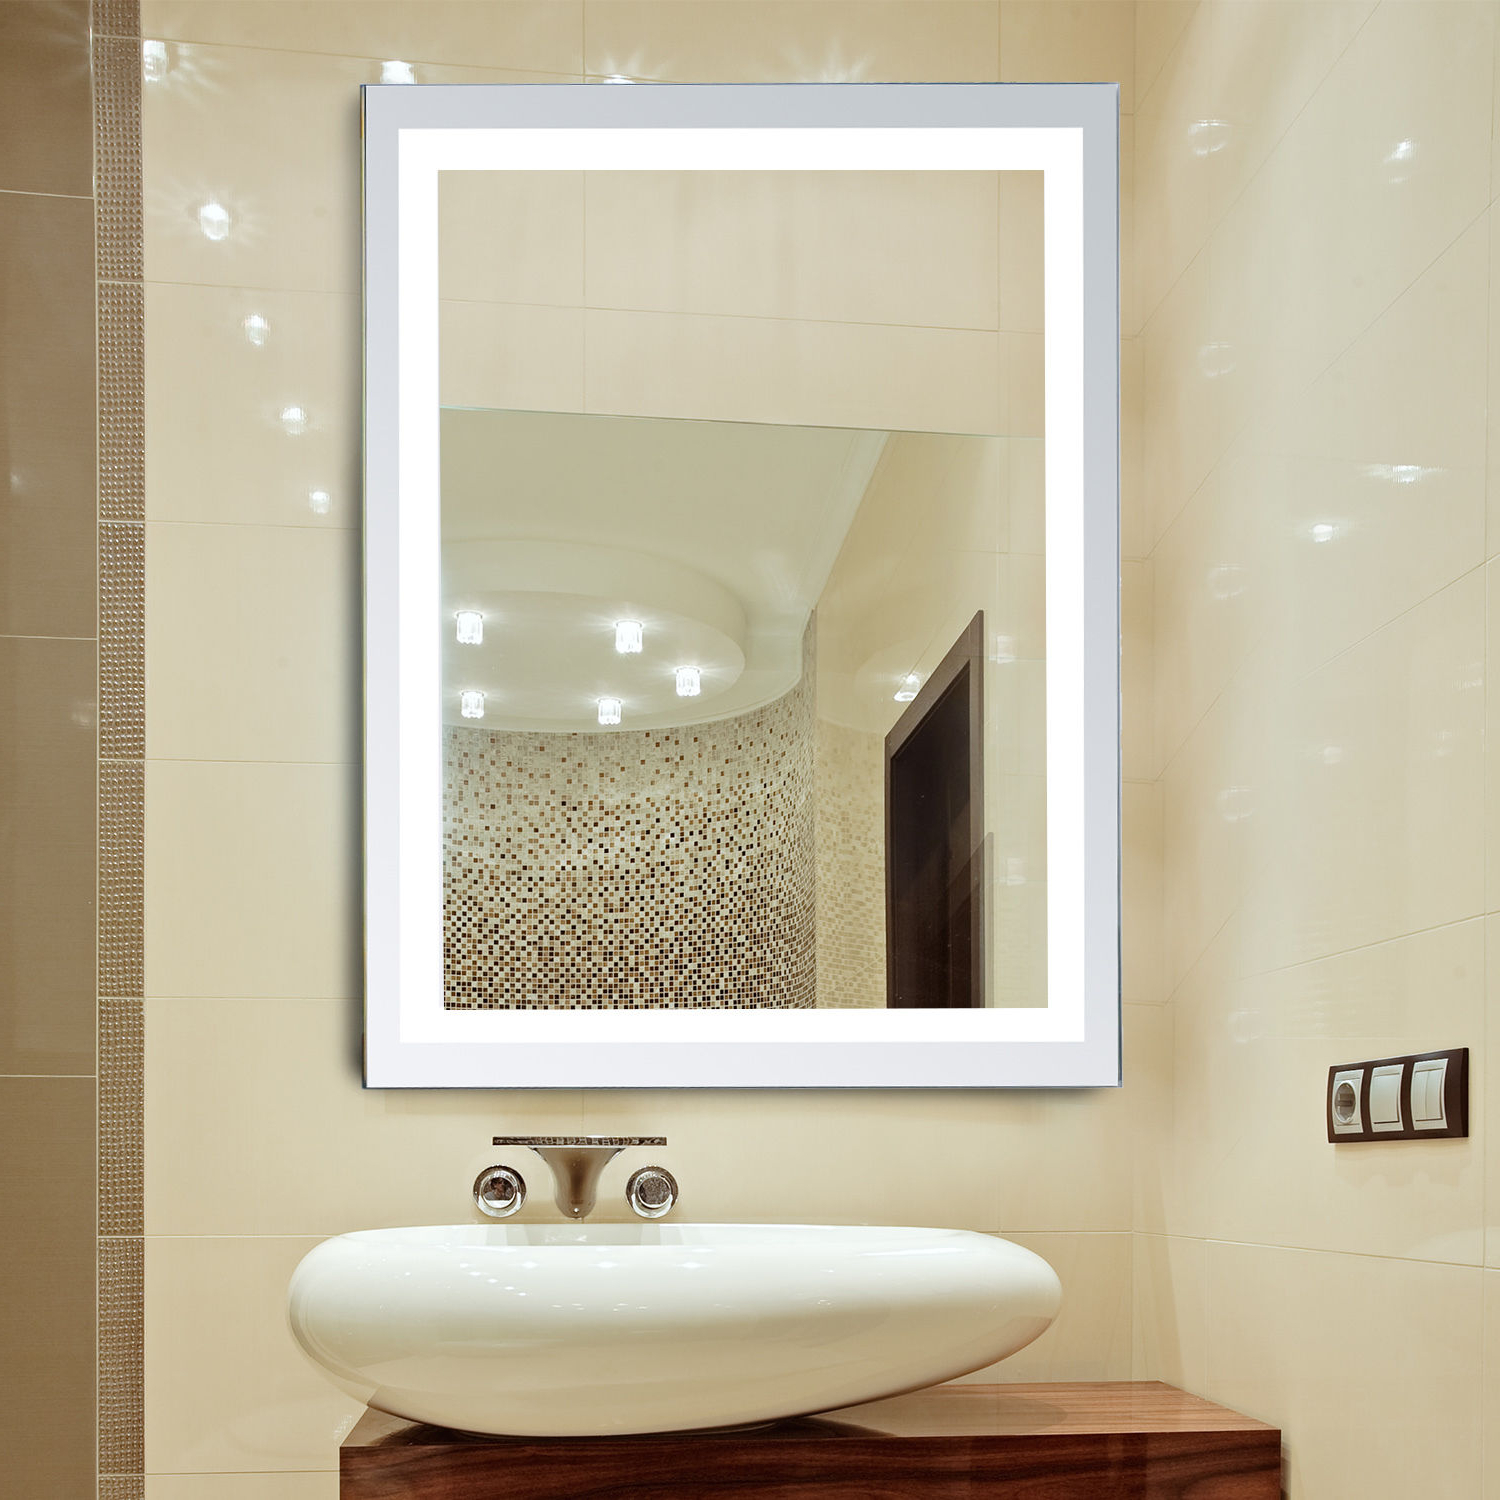 Preferred Details About Led Illuminated Bathroom Wall Mirrors With Lights Modern Makeup Vanity Mirror With Vanity Wall Mirrors (View 7 of 20)